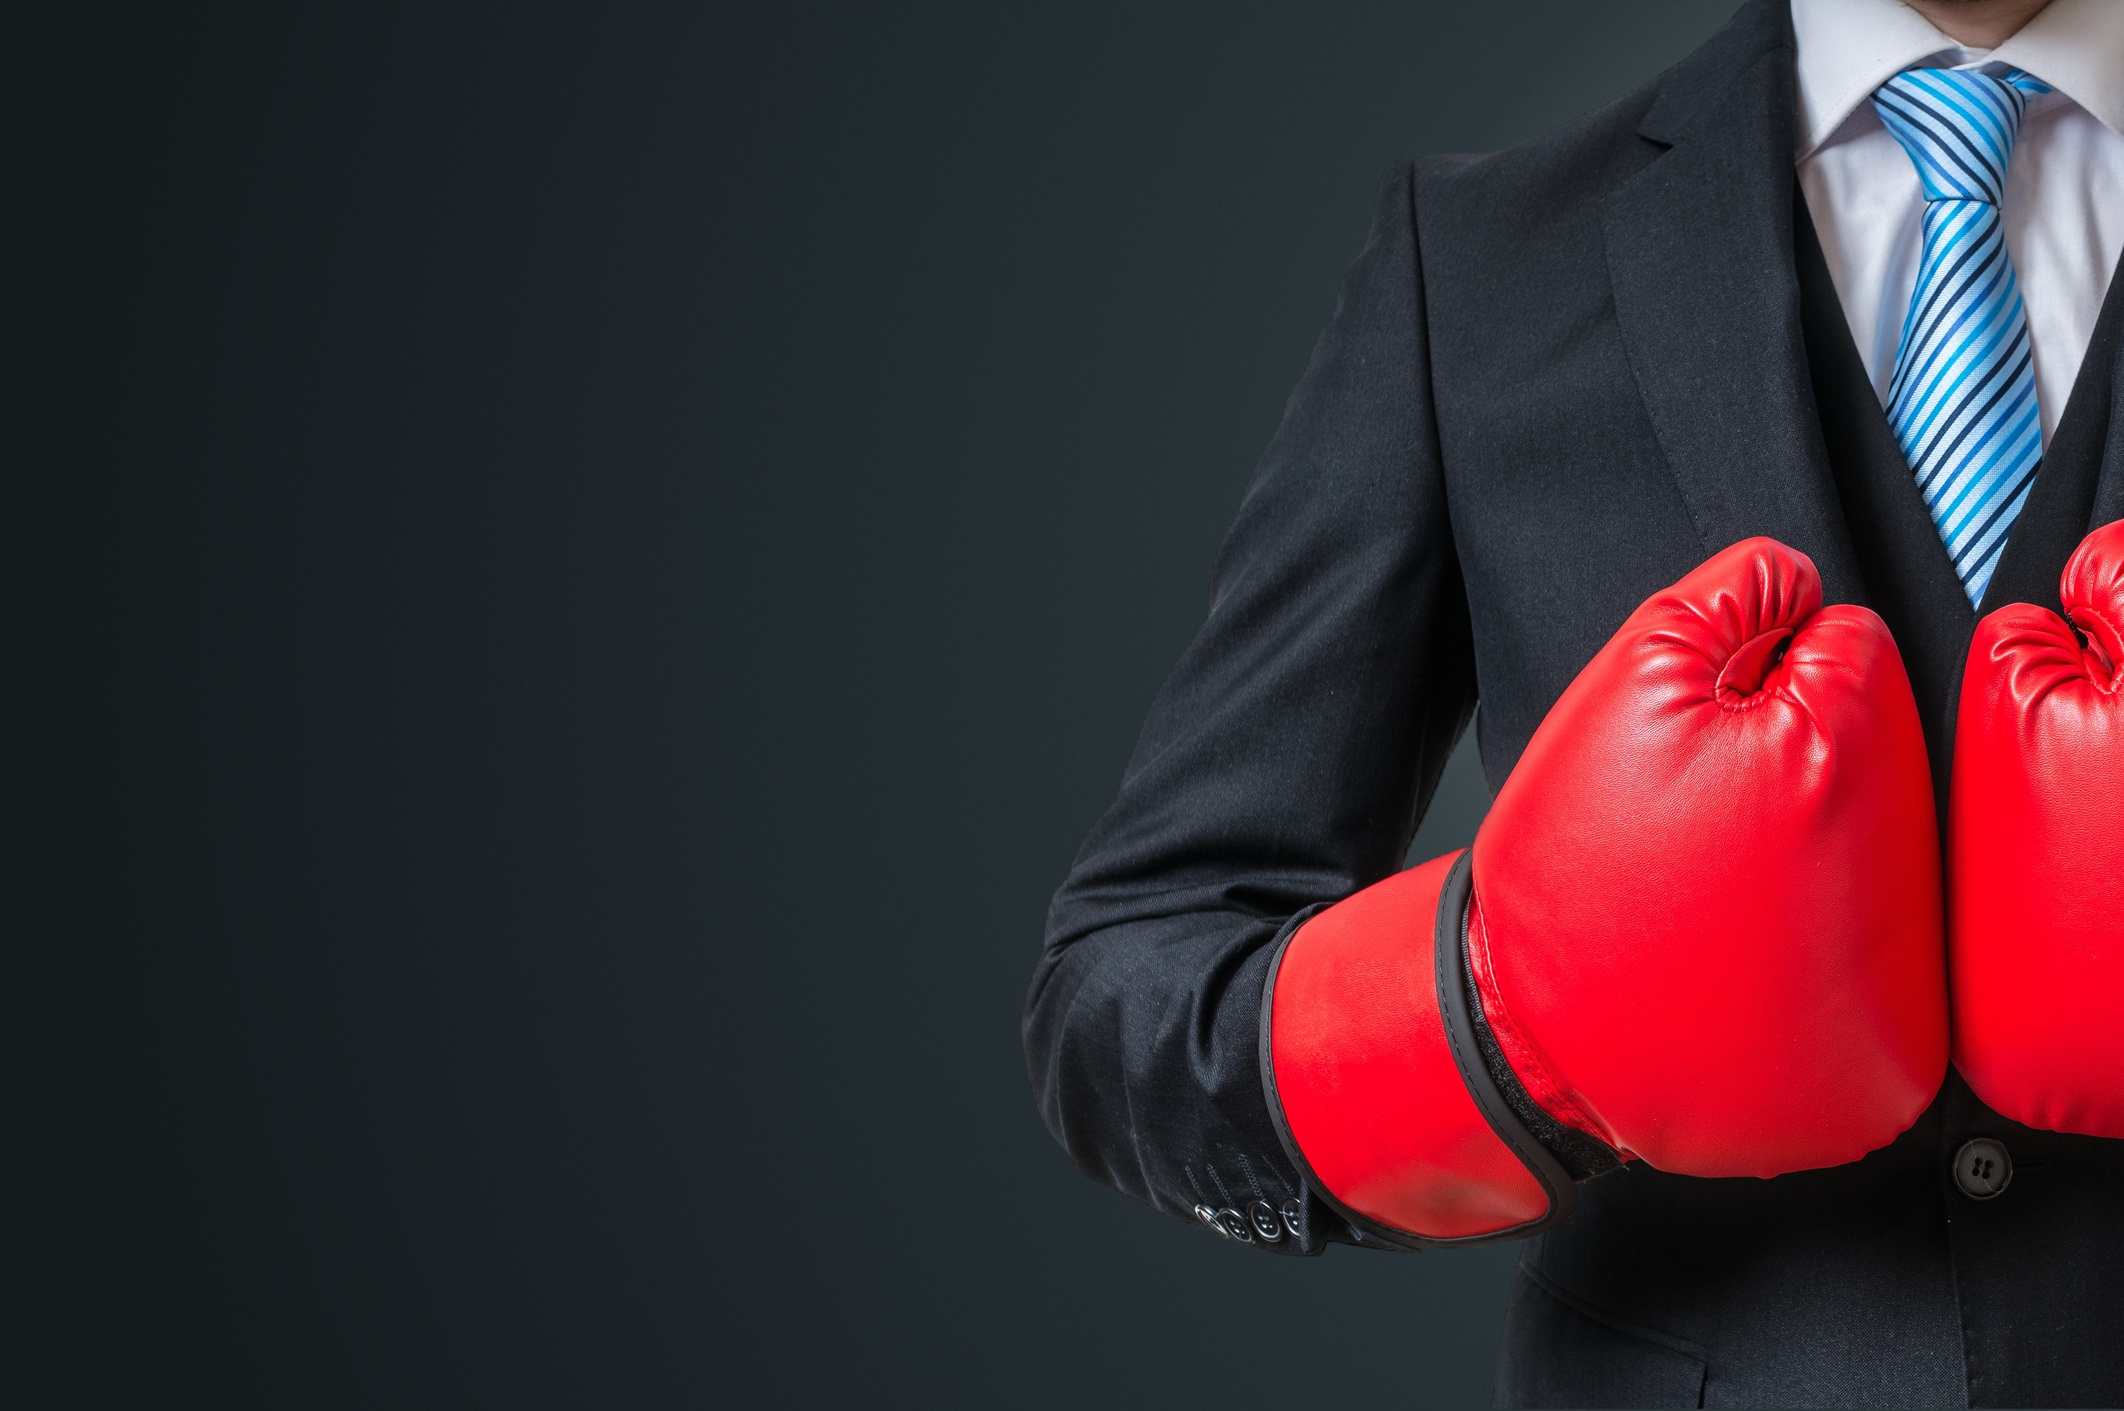 ad-fraud-battle-boxing-gloves-iStock-598522274